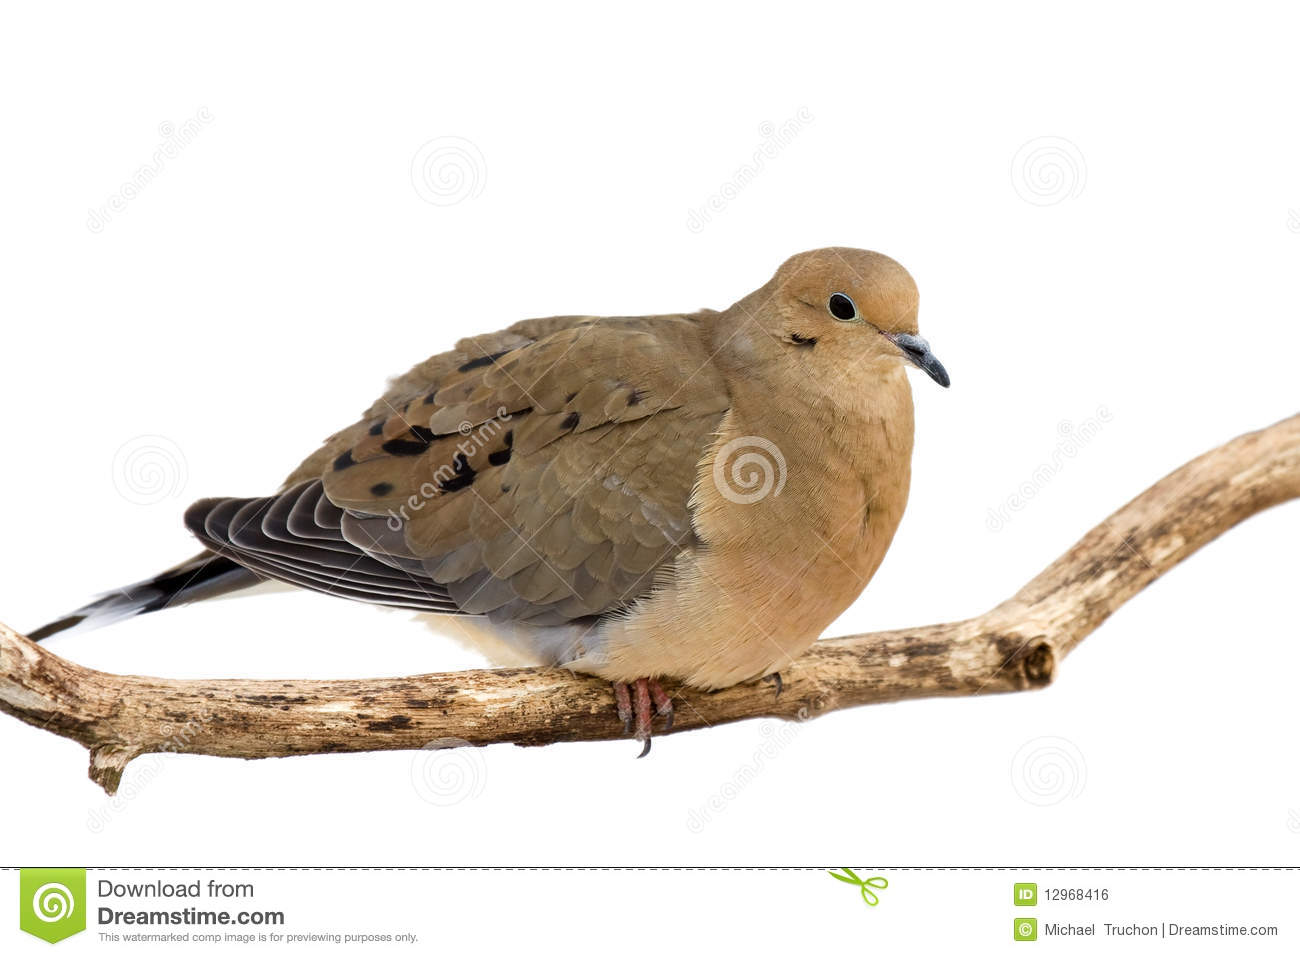 Mourning dove overlooks its surroundings